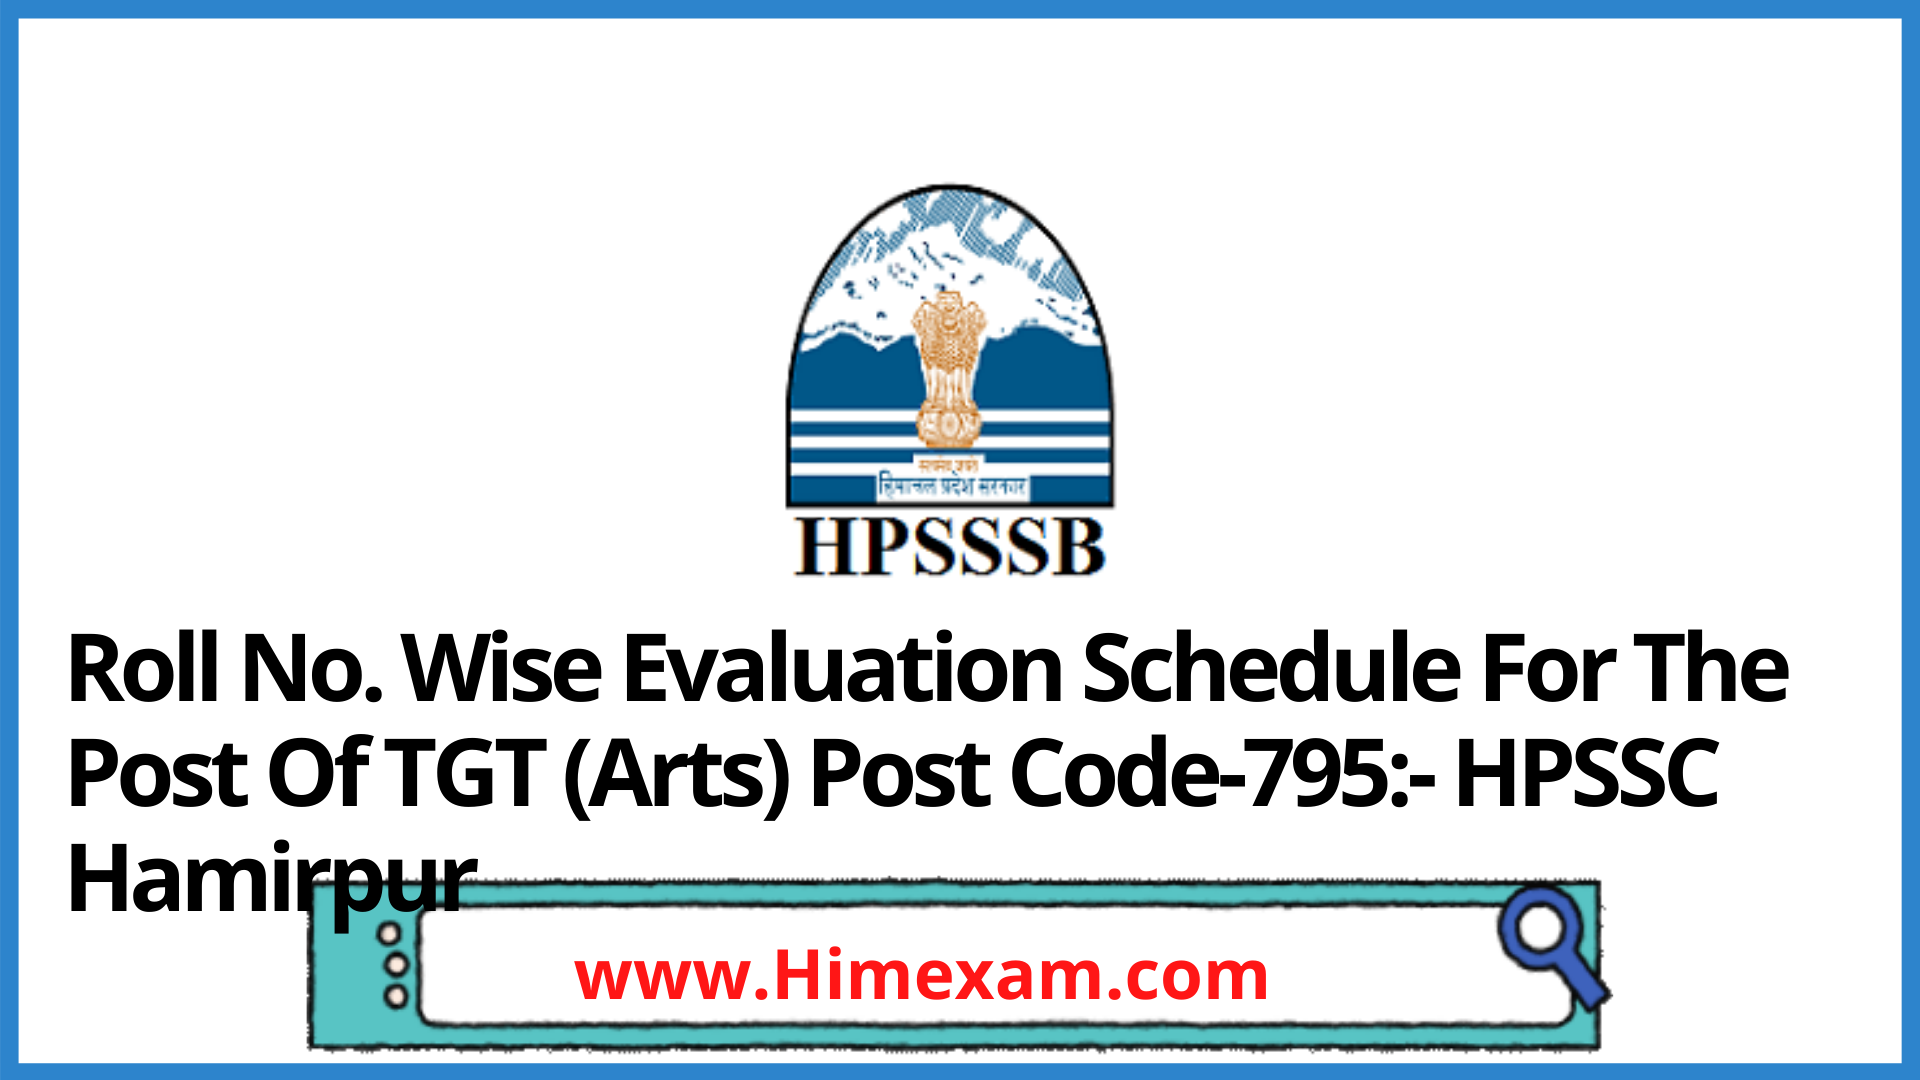 Roll No. Wise Evaluation Schedule For The Post Of TGT (Arts) Post Code-795:- HPSSC Hamirpur